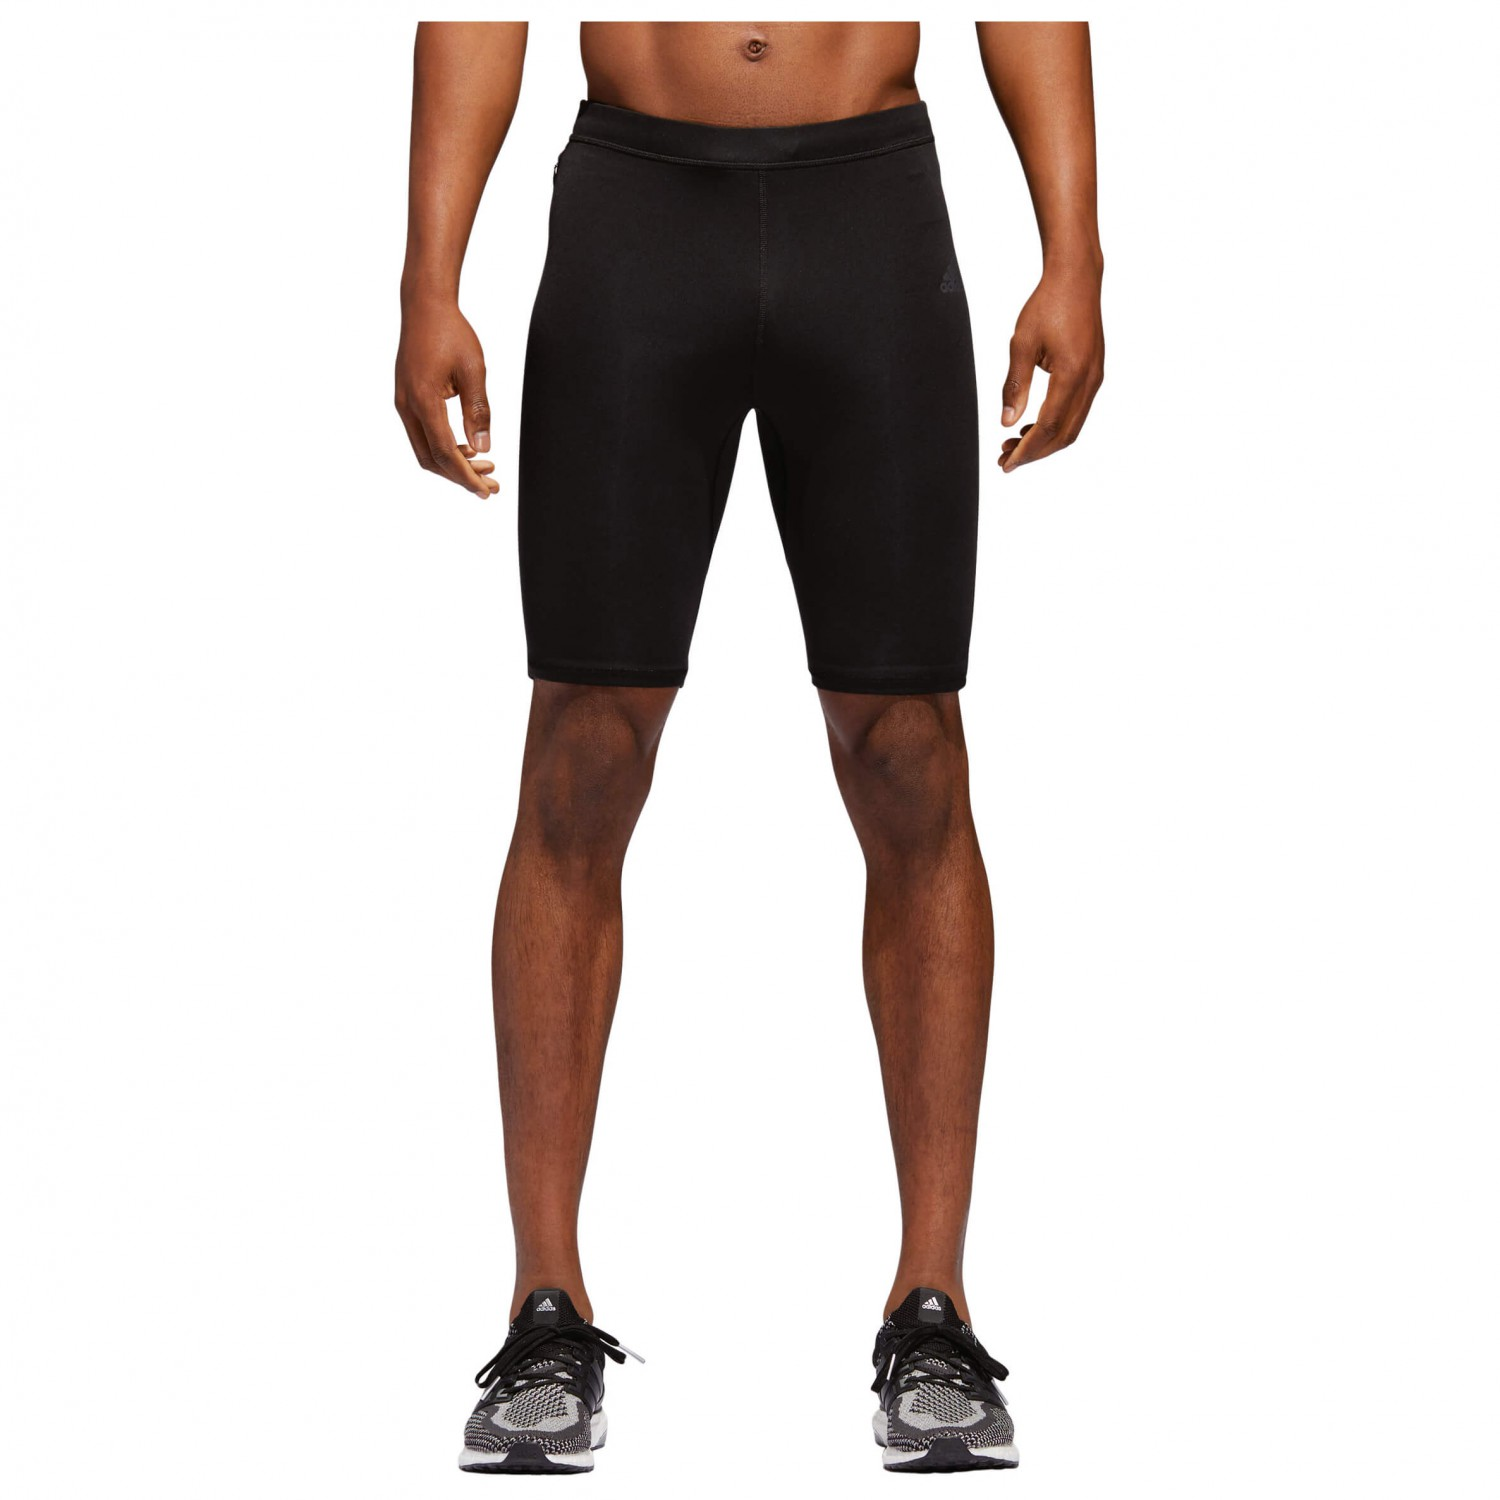 Adidas Response Short Tight Short de running Homme | Achat